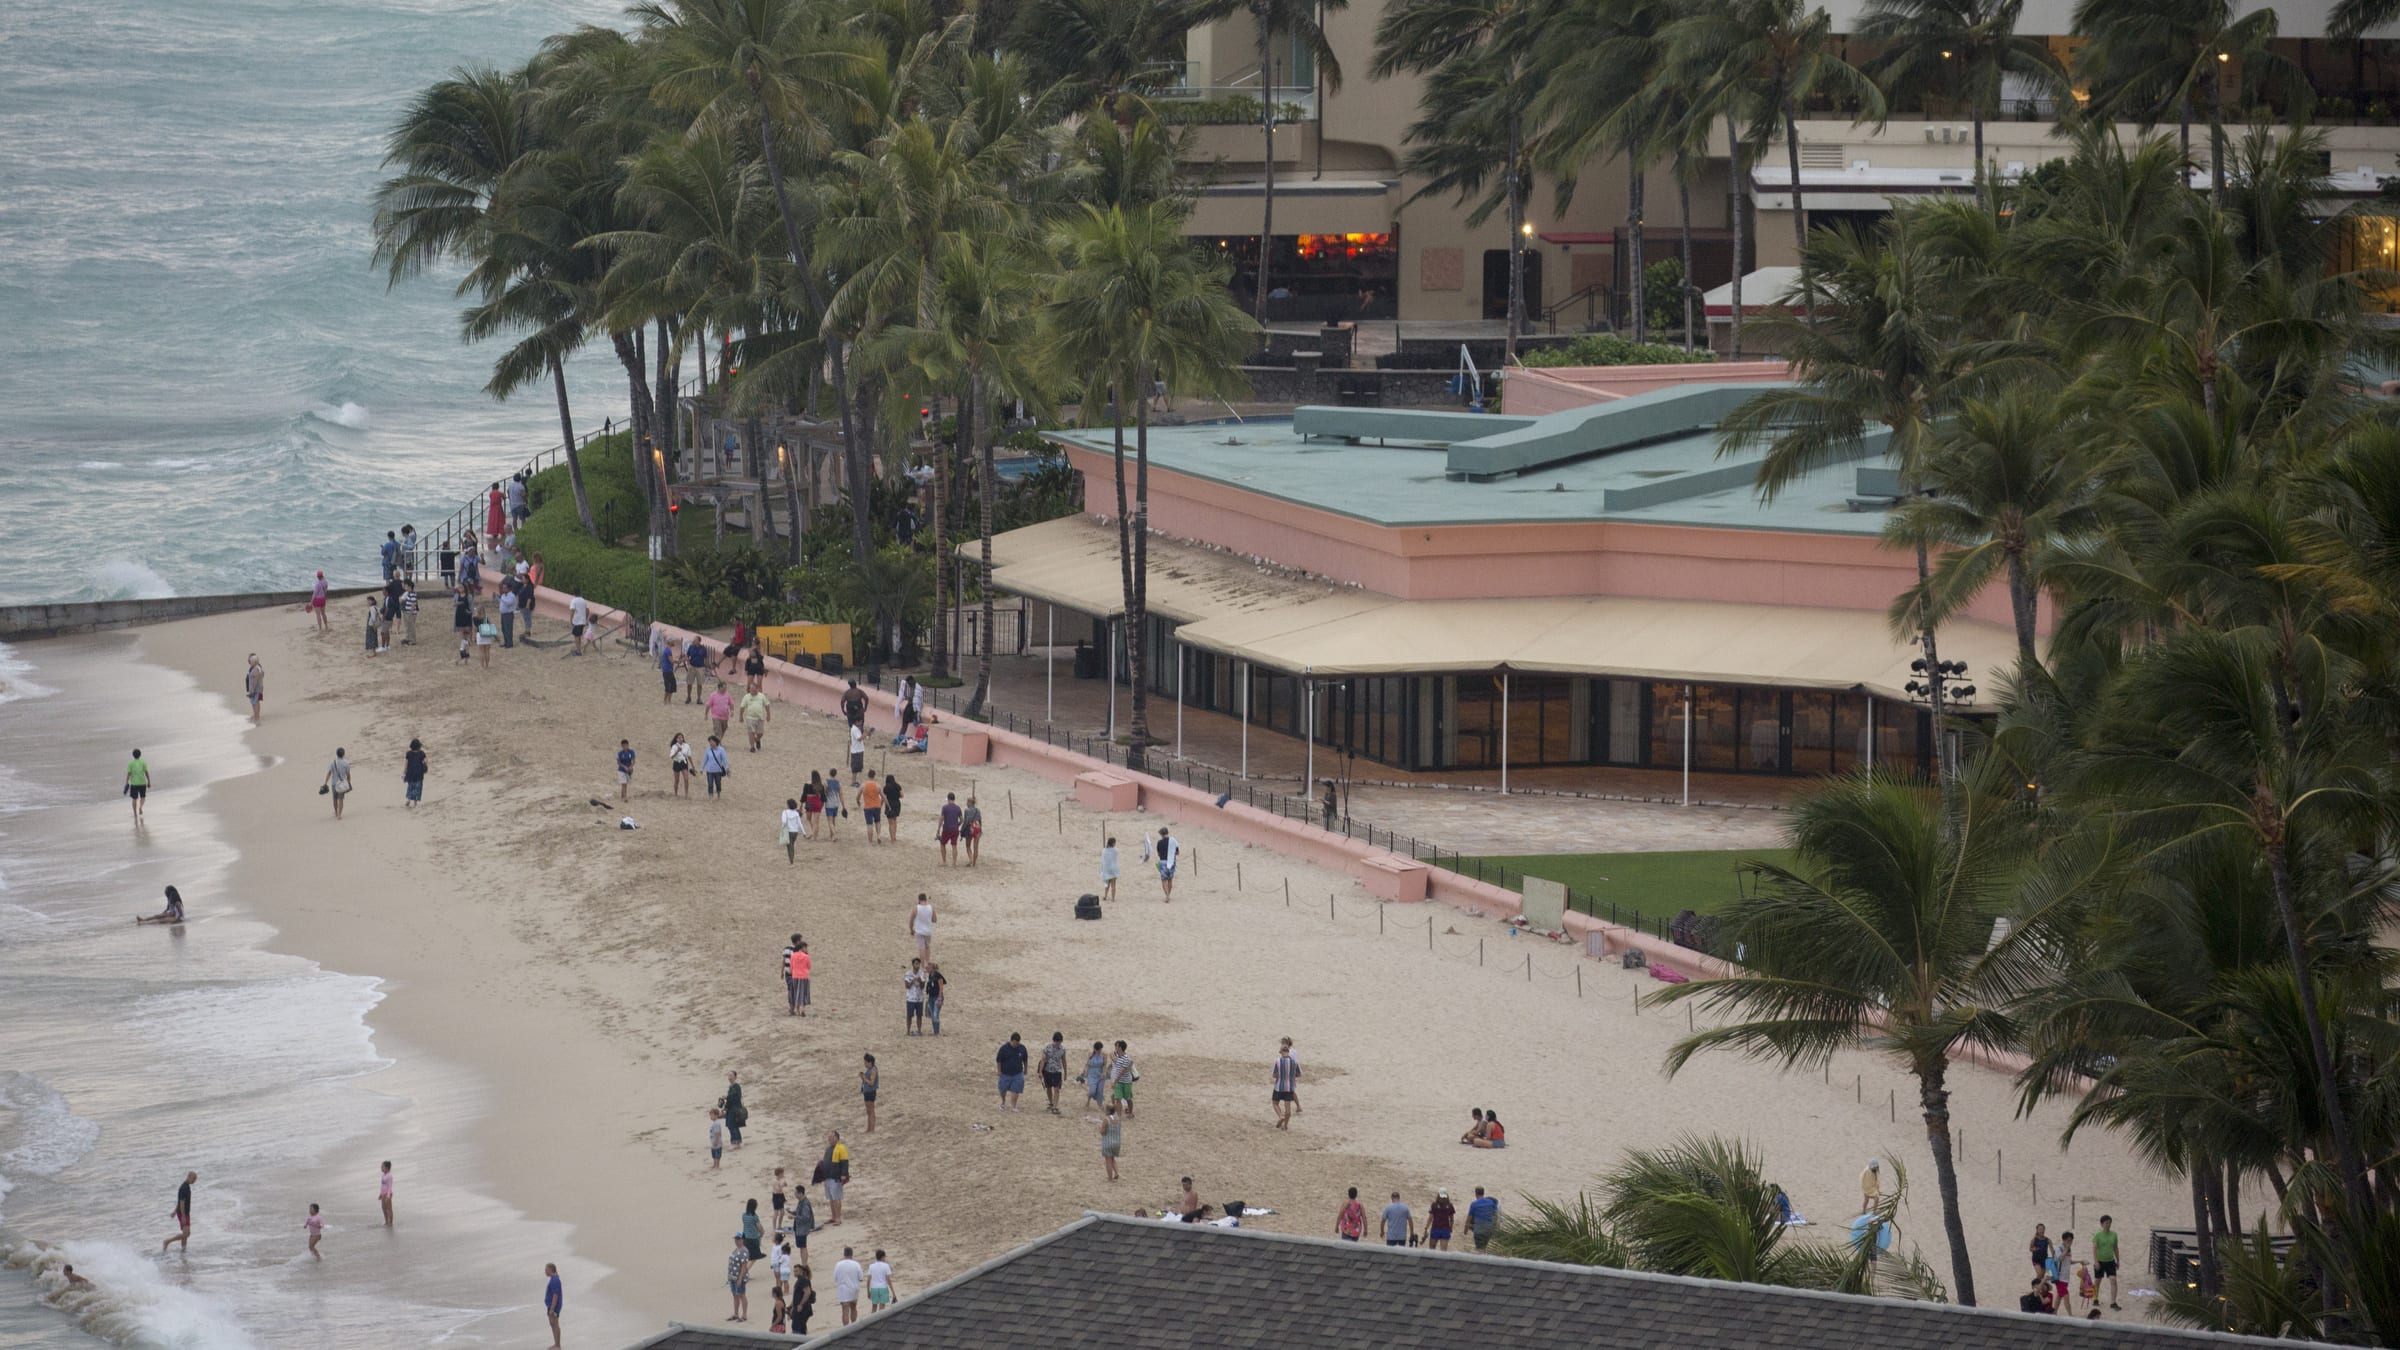 HONOLULU, HI - AUGUST 23: 2018   The threat of Hurricane Lane does not deter the tourists and locals from playing on the beach or in the ocean at the Royal Hawaiian as Hurricane Lane approaches Waikiki Beach on Kalakaua Ave on Thursday, August 23, 2018 in Honolulu, Hi.   (Photo by Kat Wade/Getty Images)